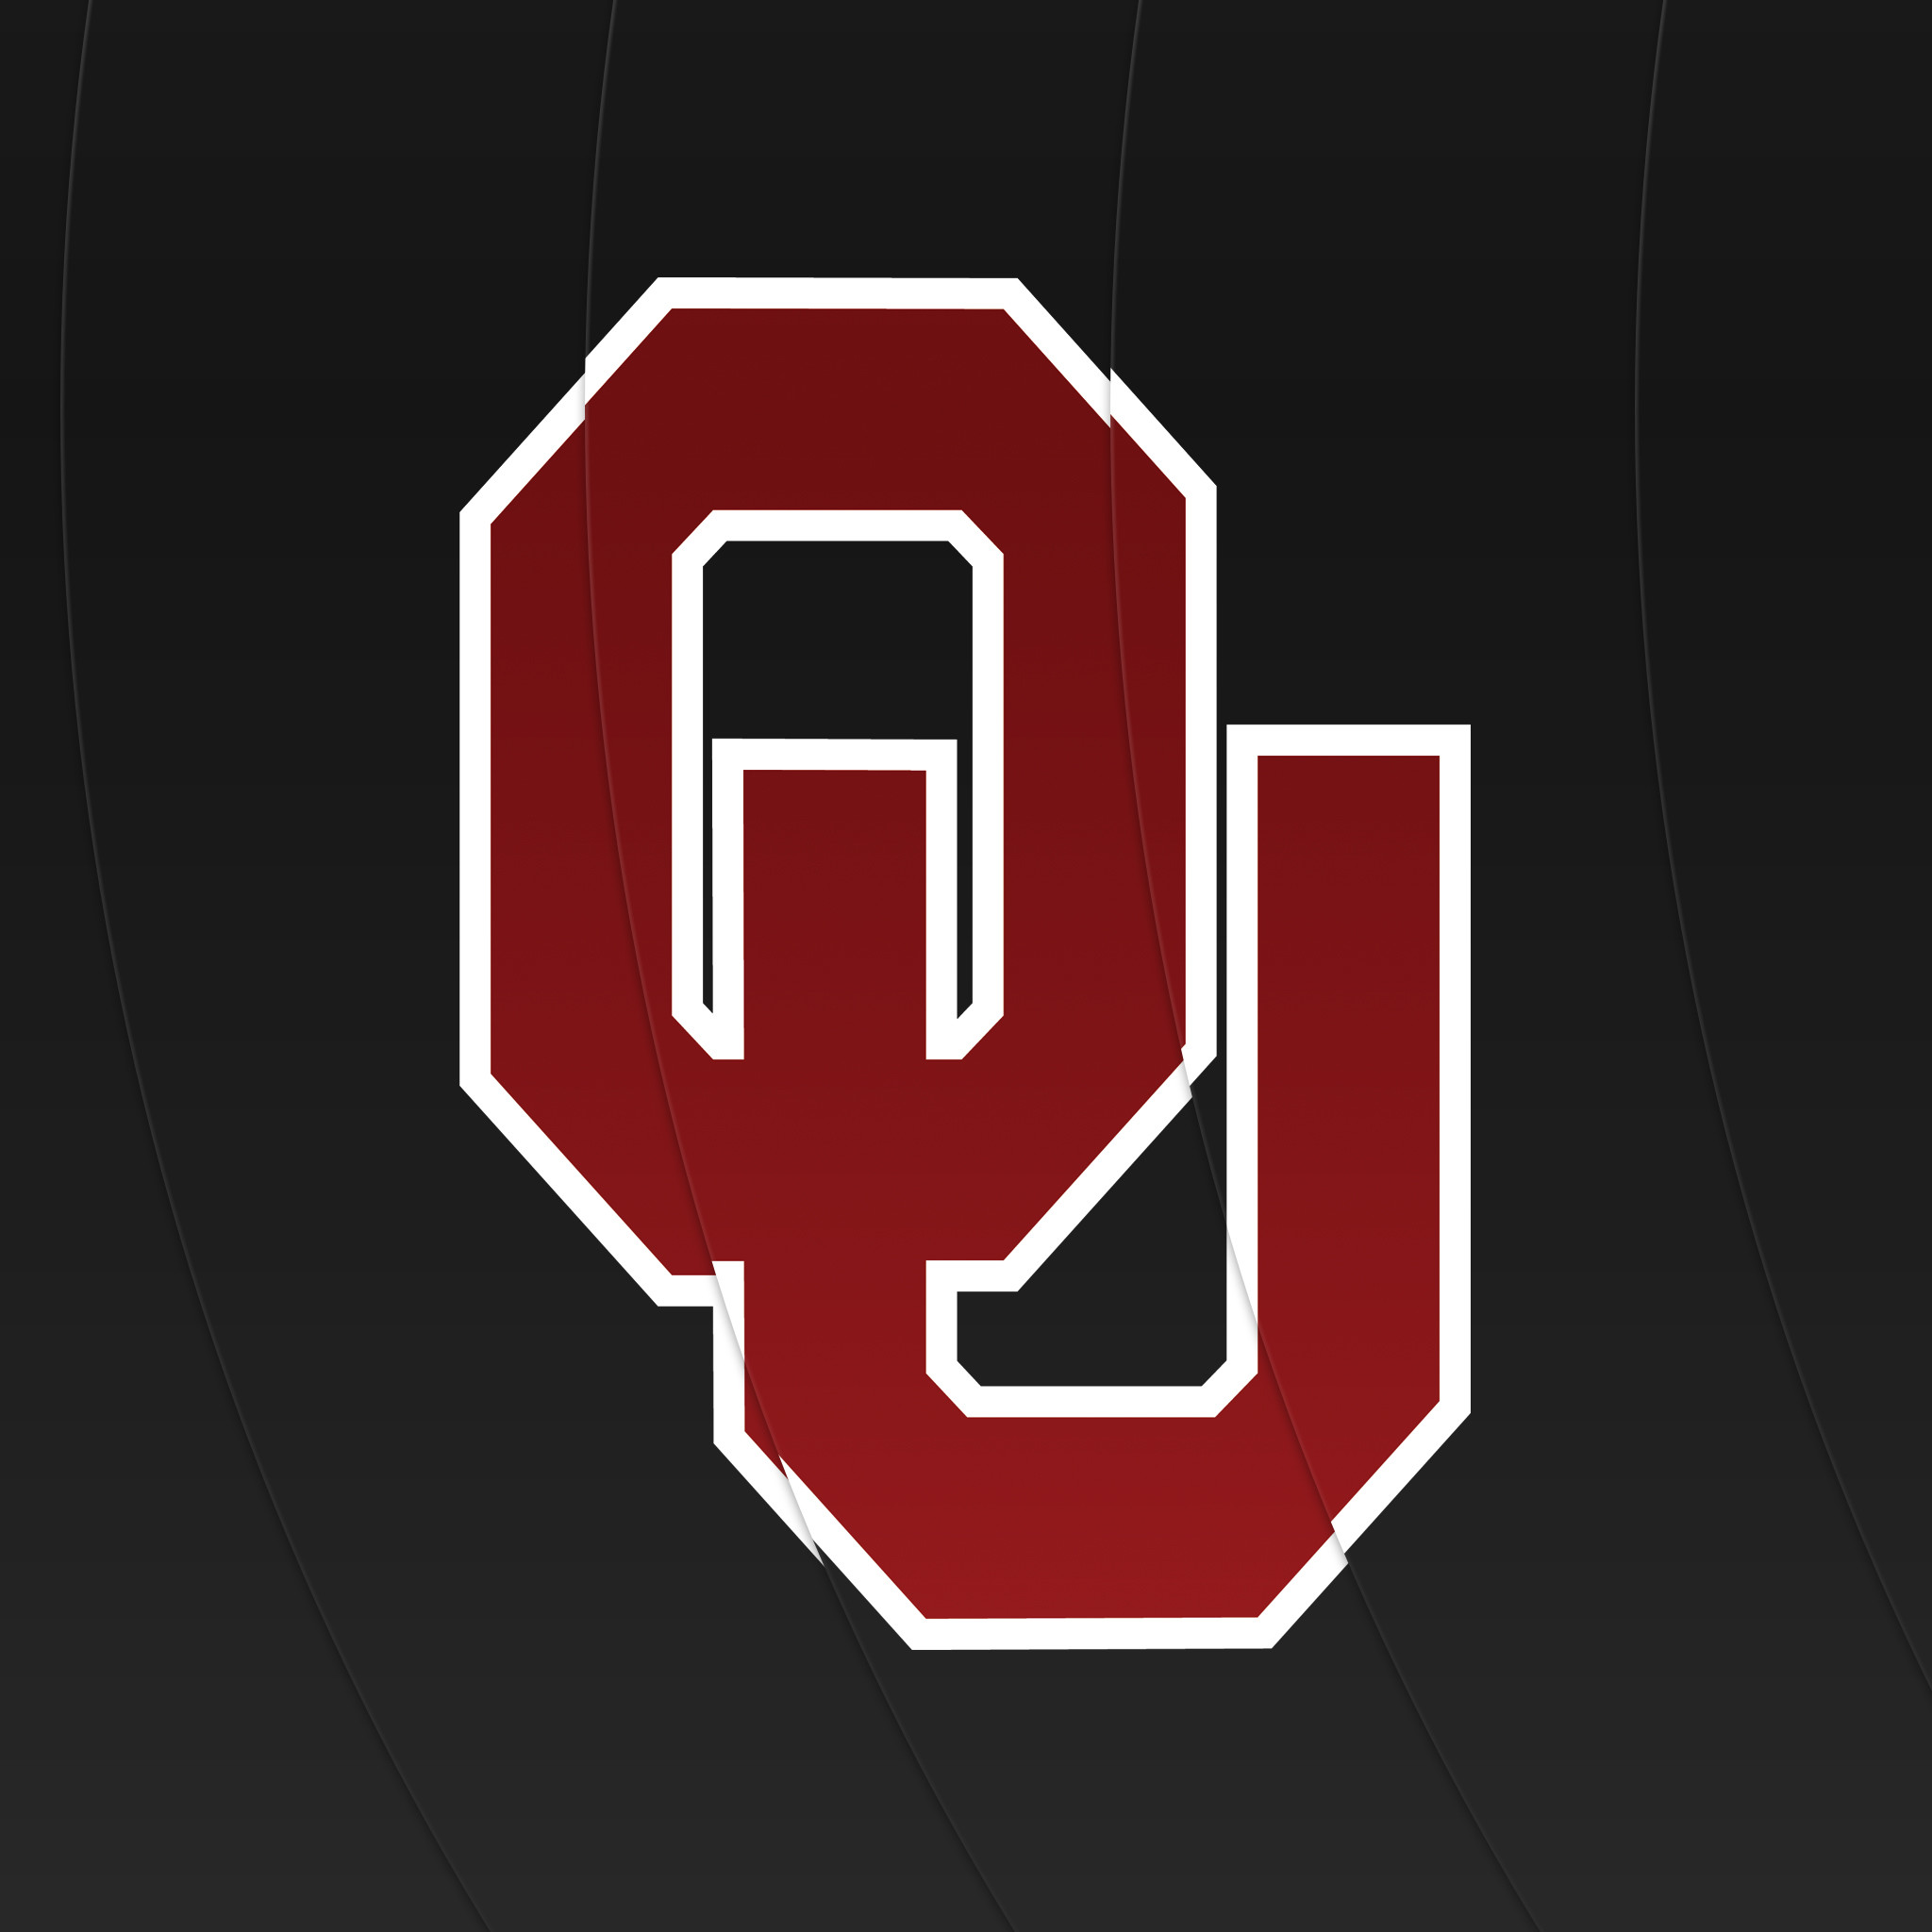 2560x1600, Ou Logo Desktop Background Oklahoma Sooners.